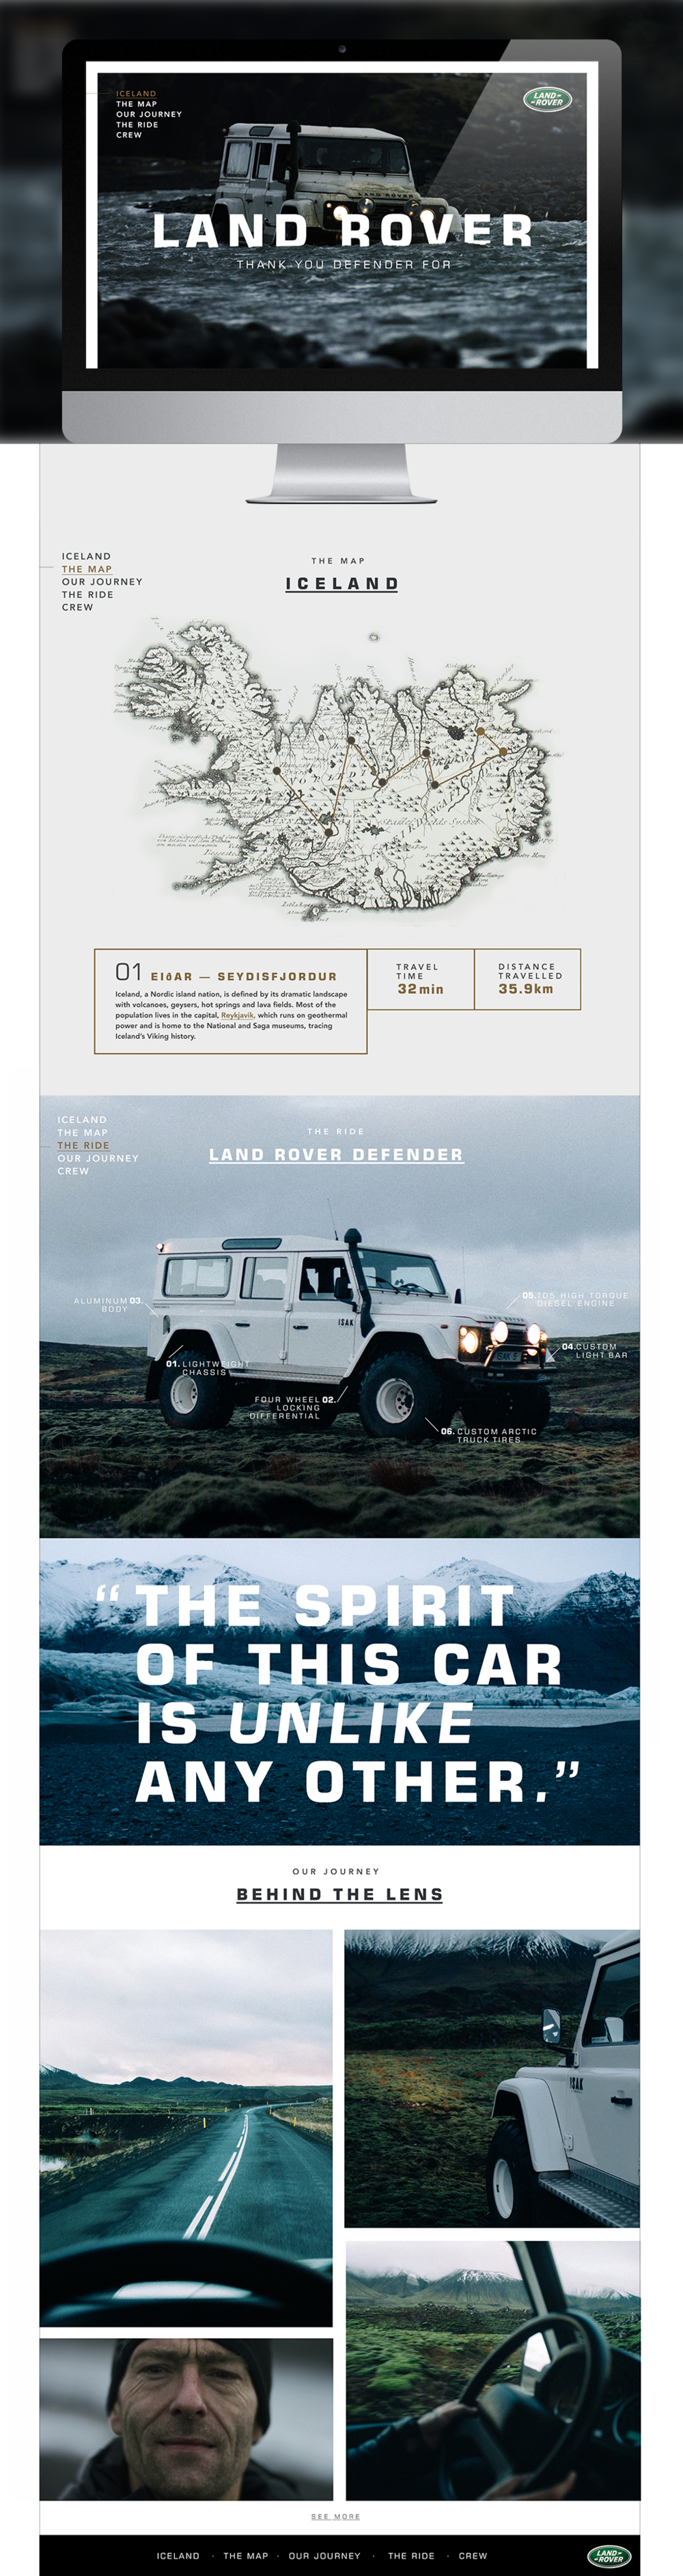 LandRover_01.png